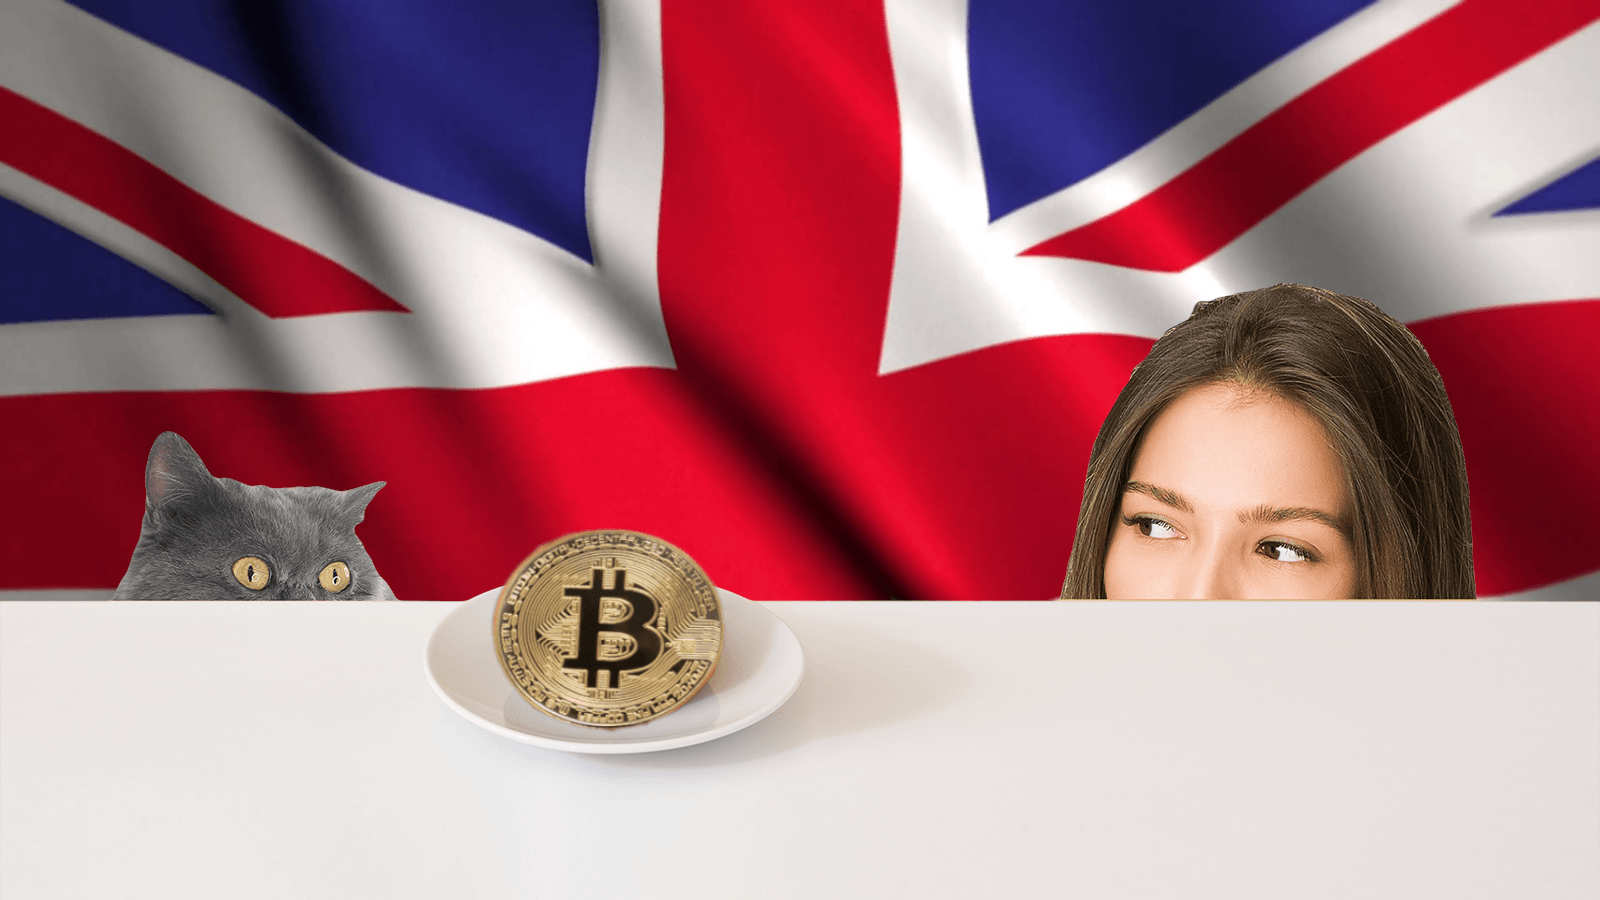 British investors lost $34M to cryptocurrency scams last year